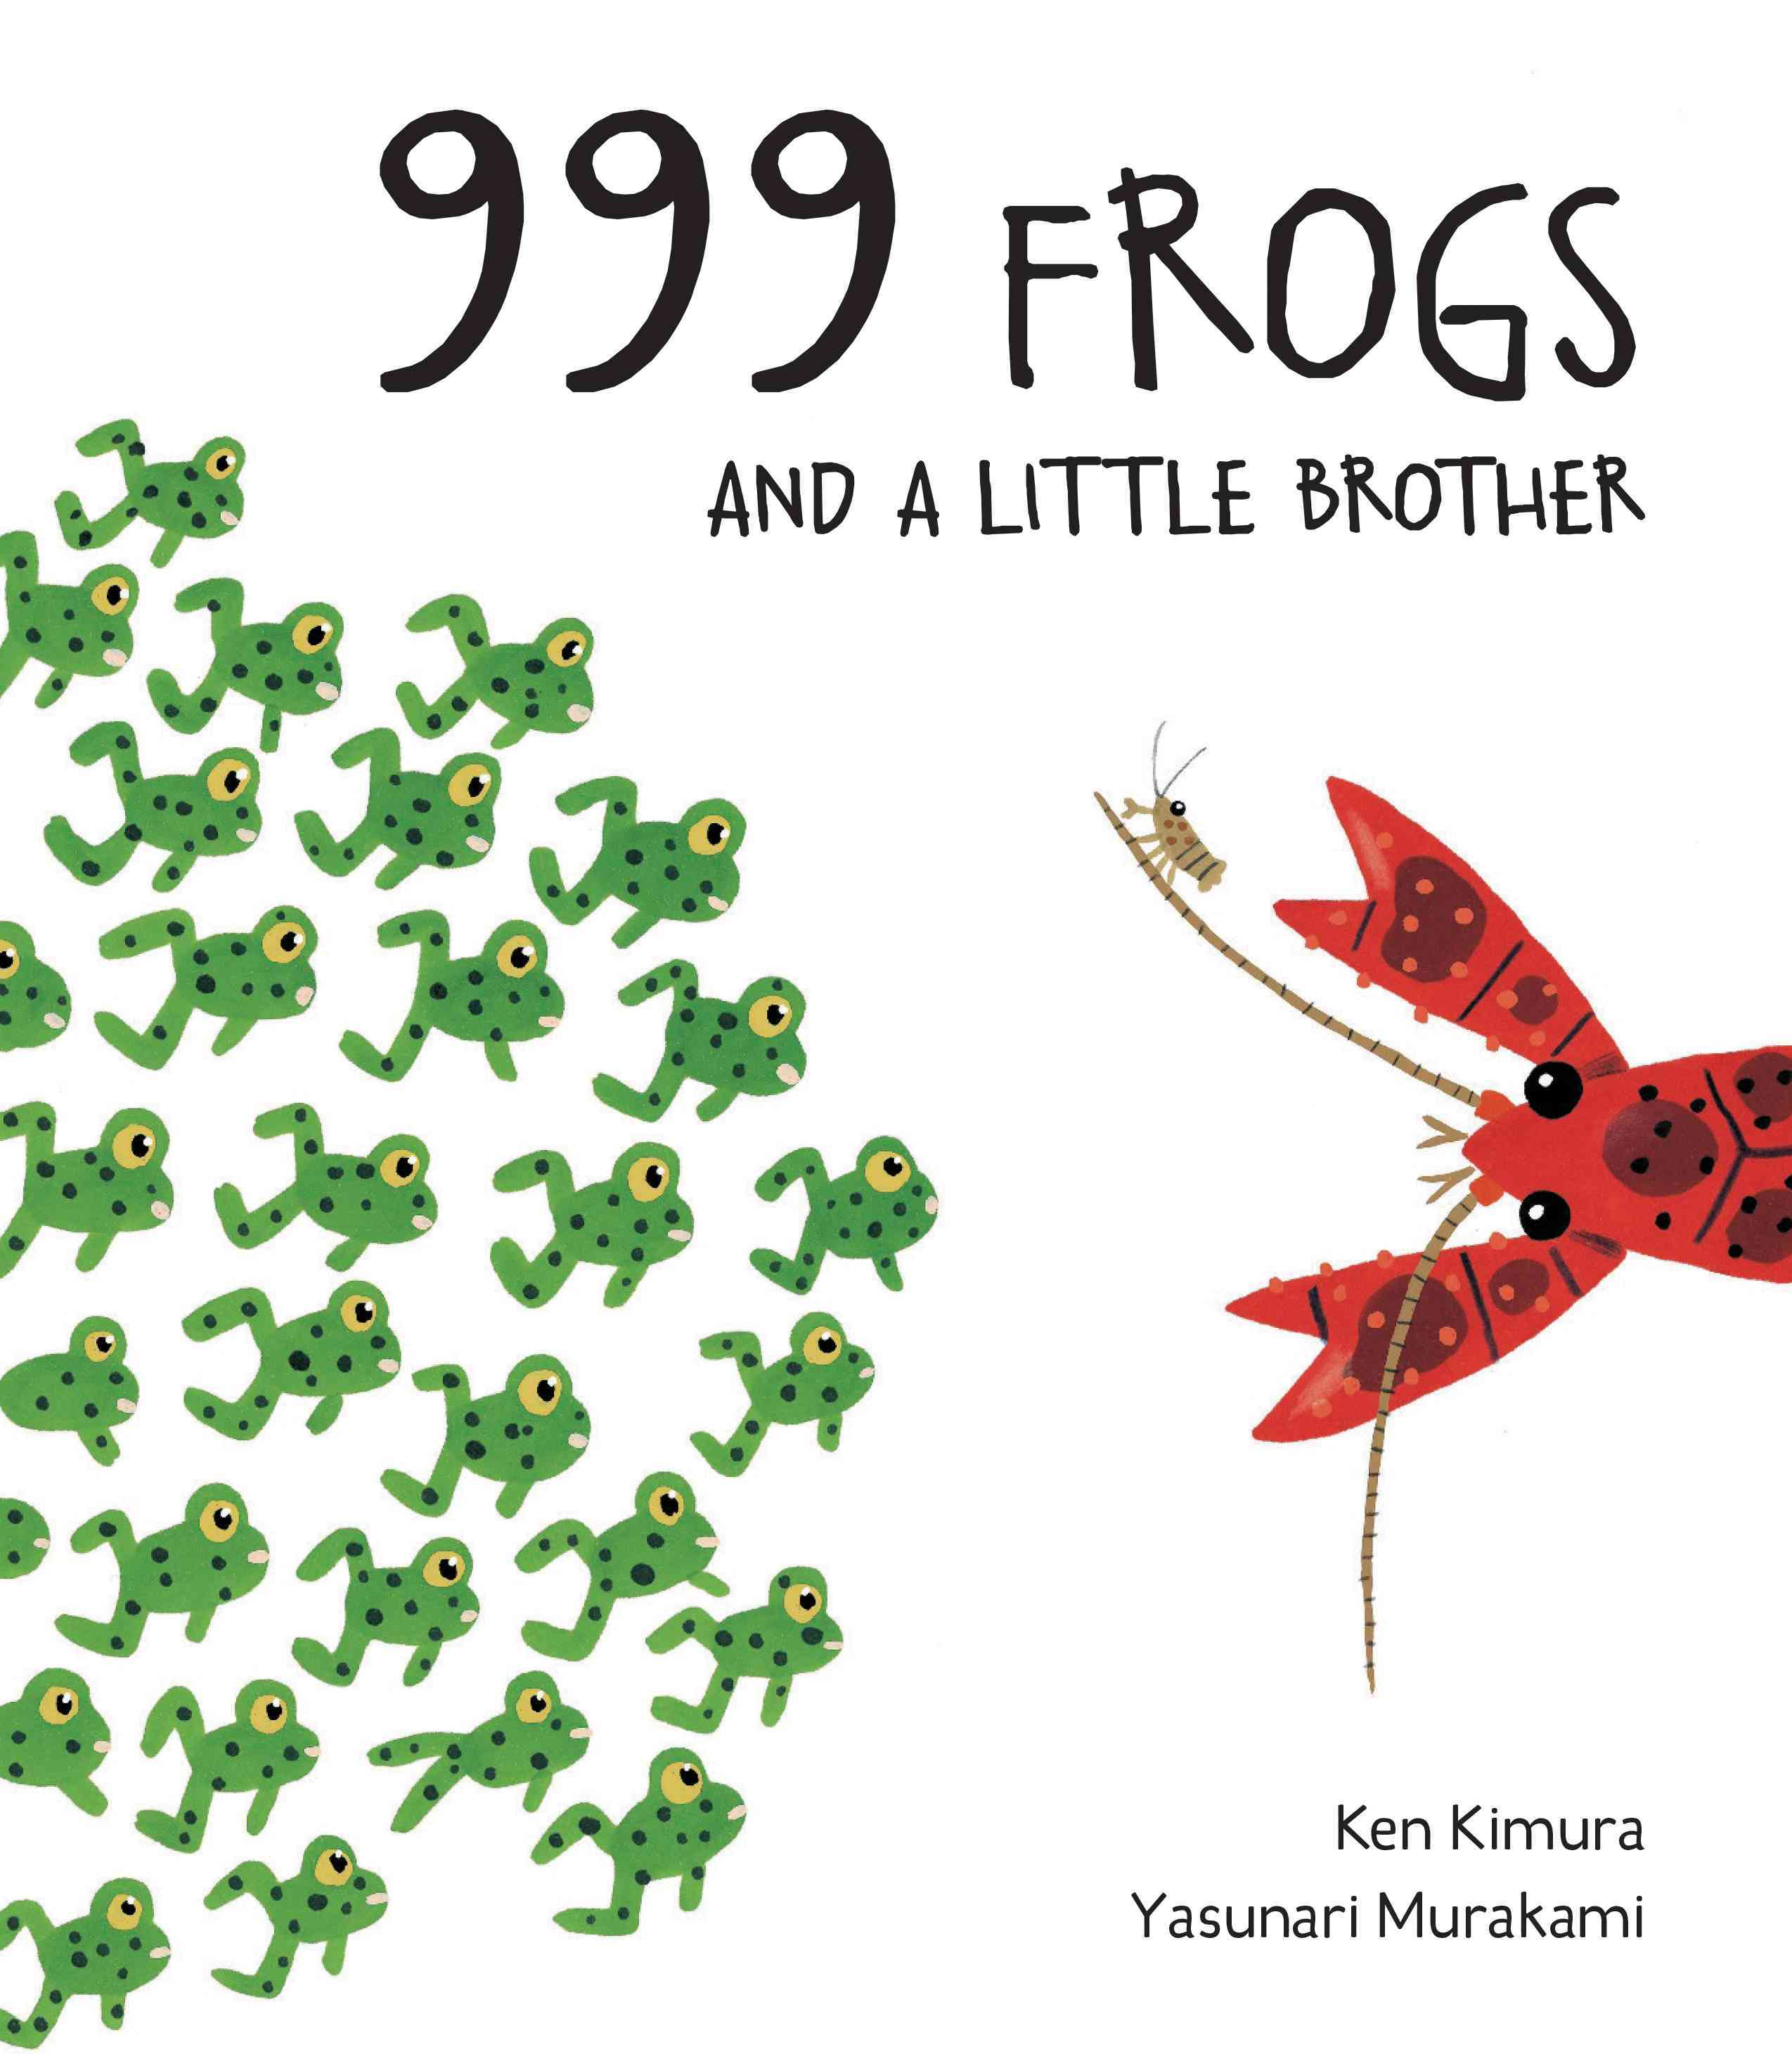 999 Frogs and a Little Brother By Murakami, Yasanuri/ Kimura, Ken (ILT)